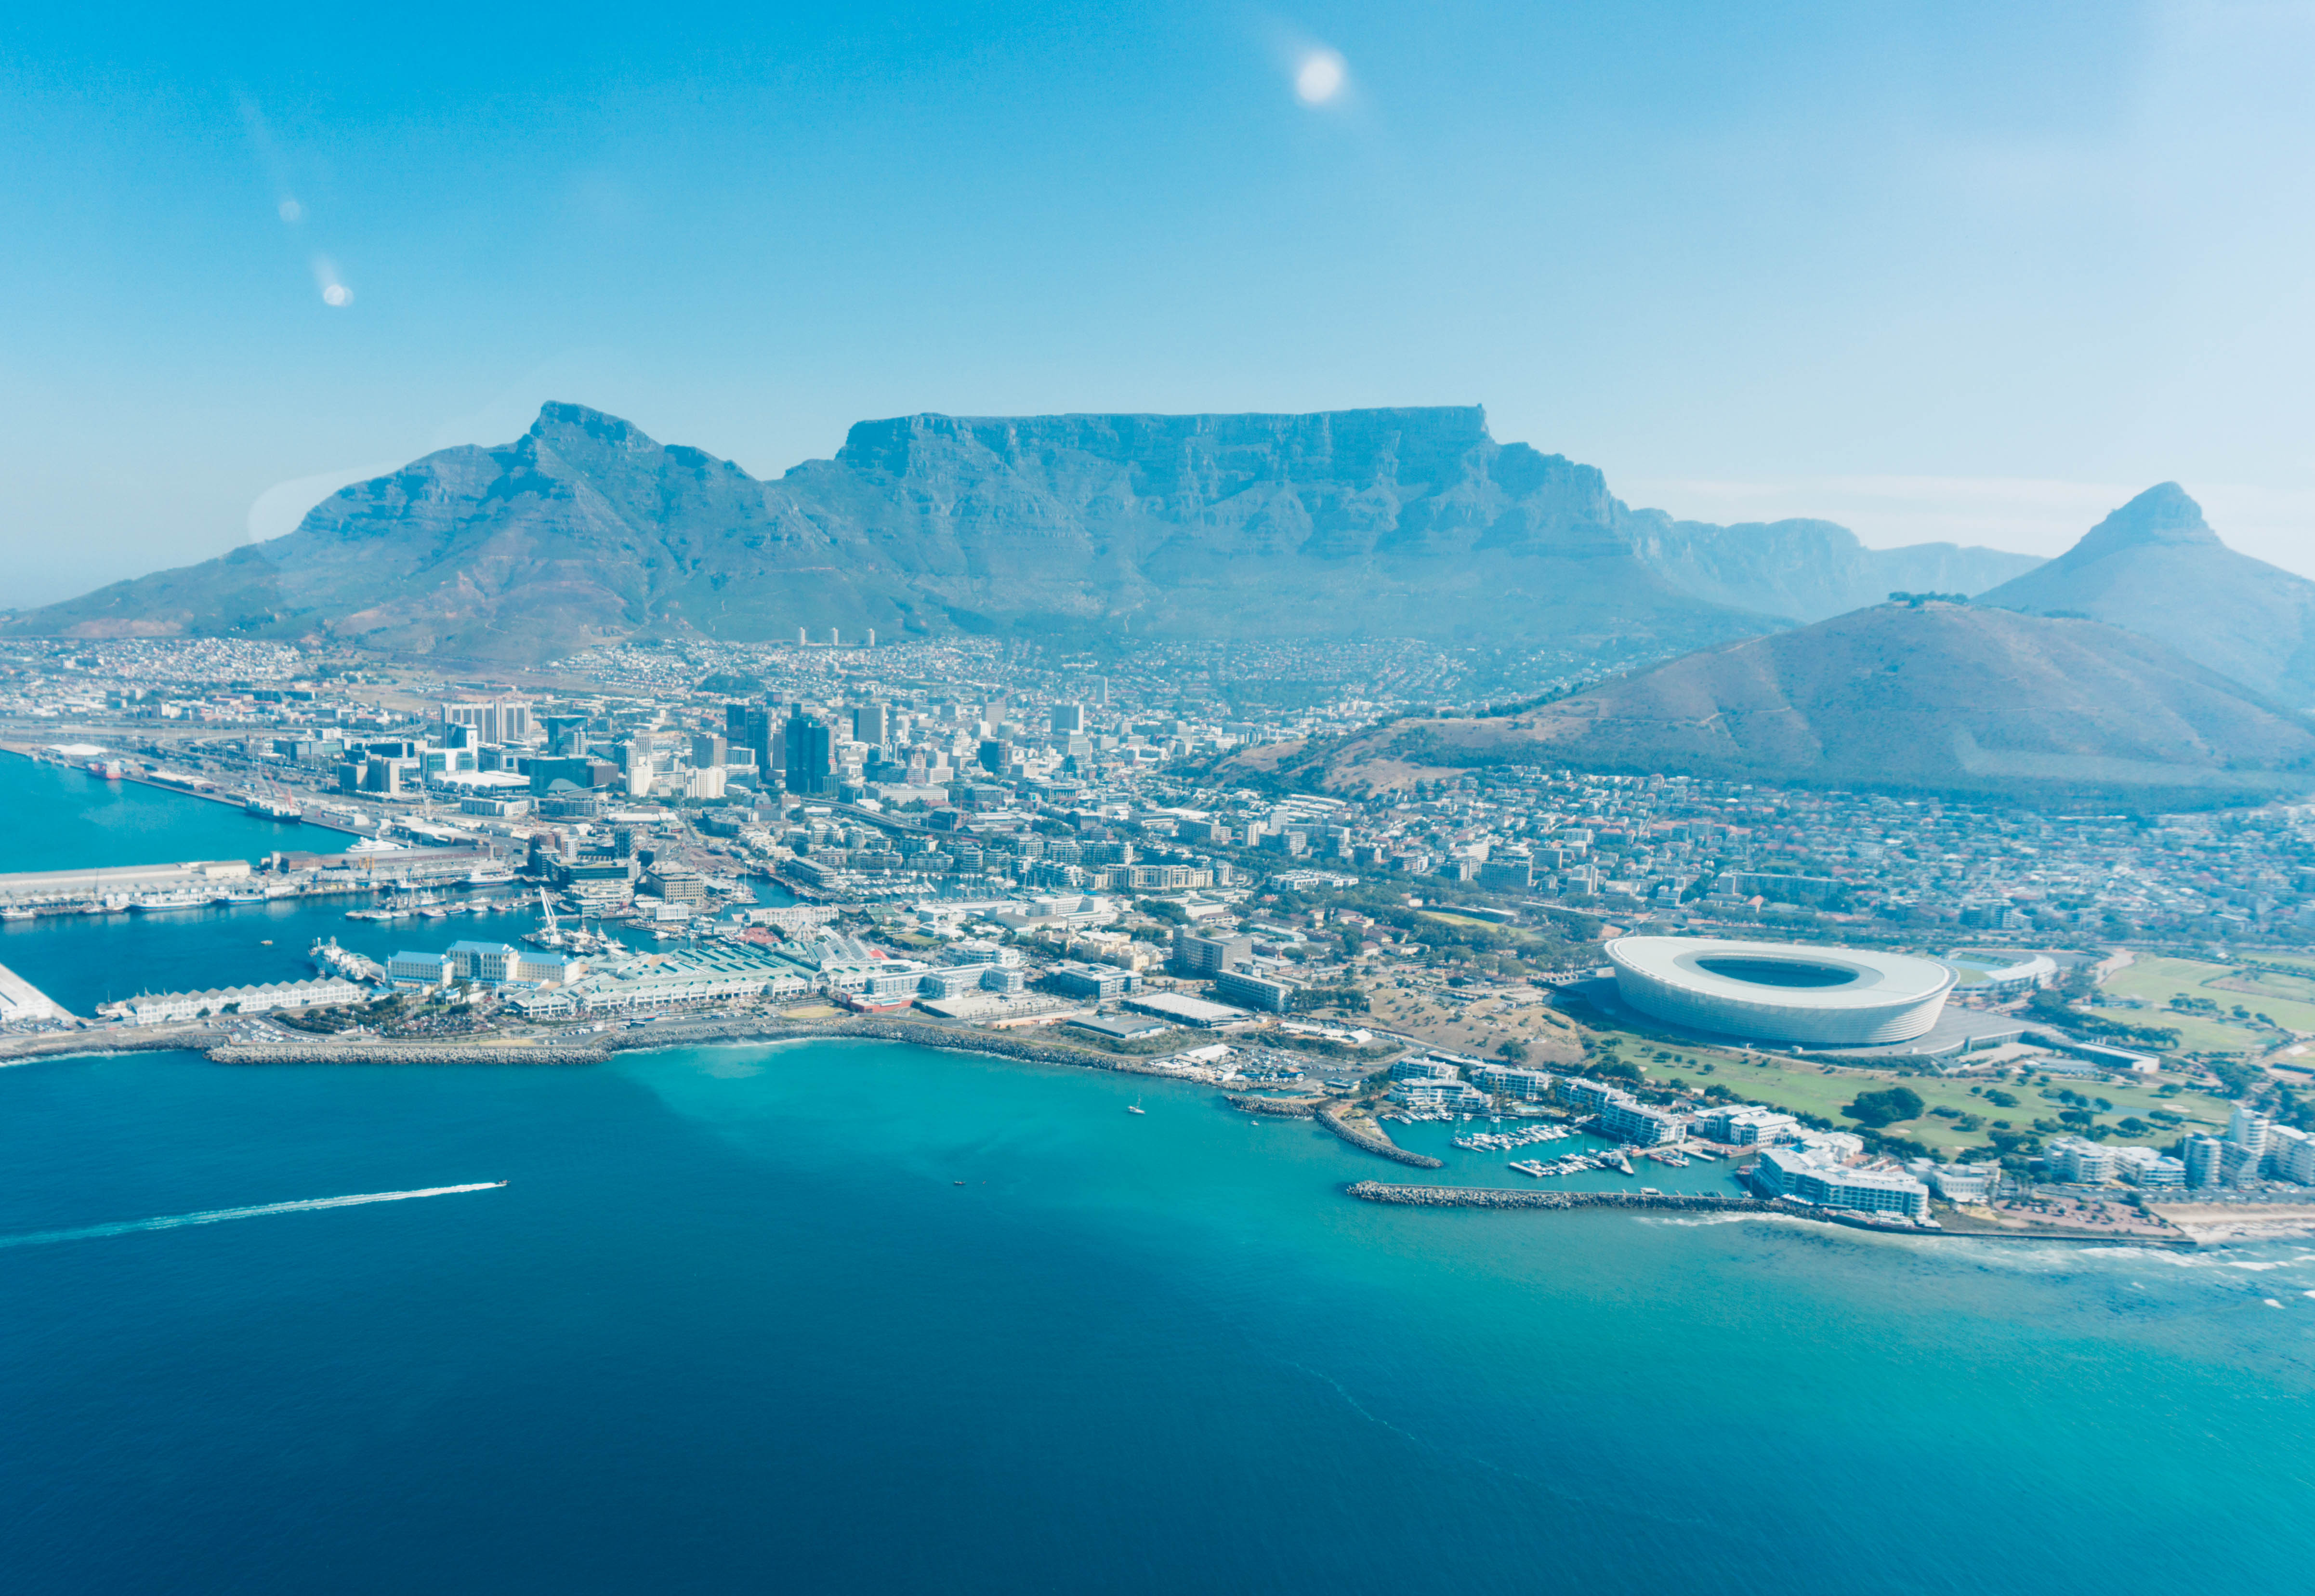 Experiencing a Helicopter Ride in Cape Town